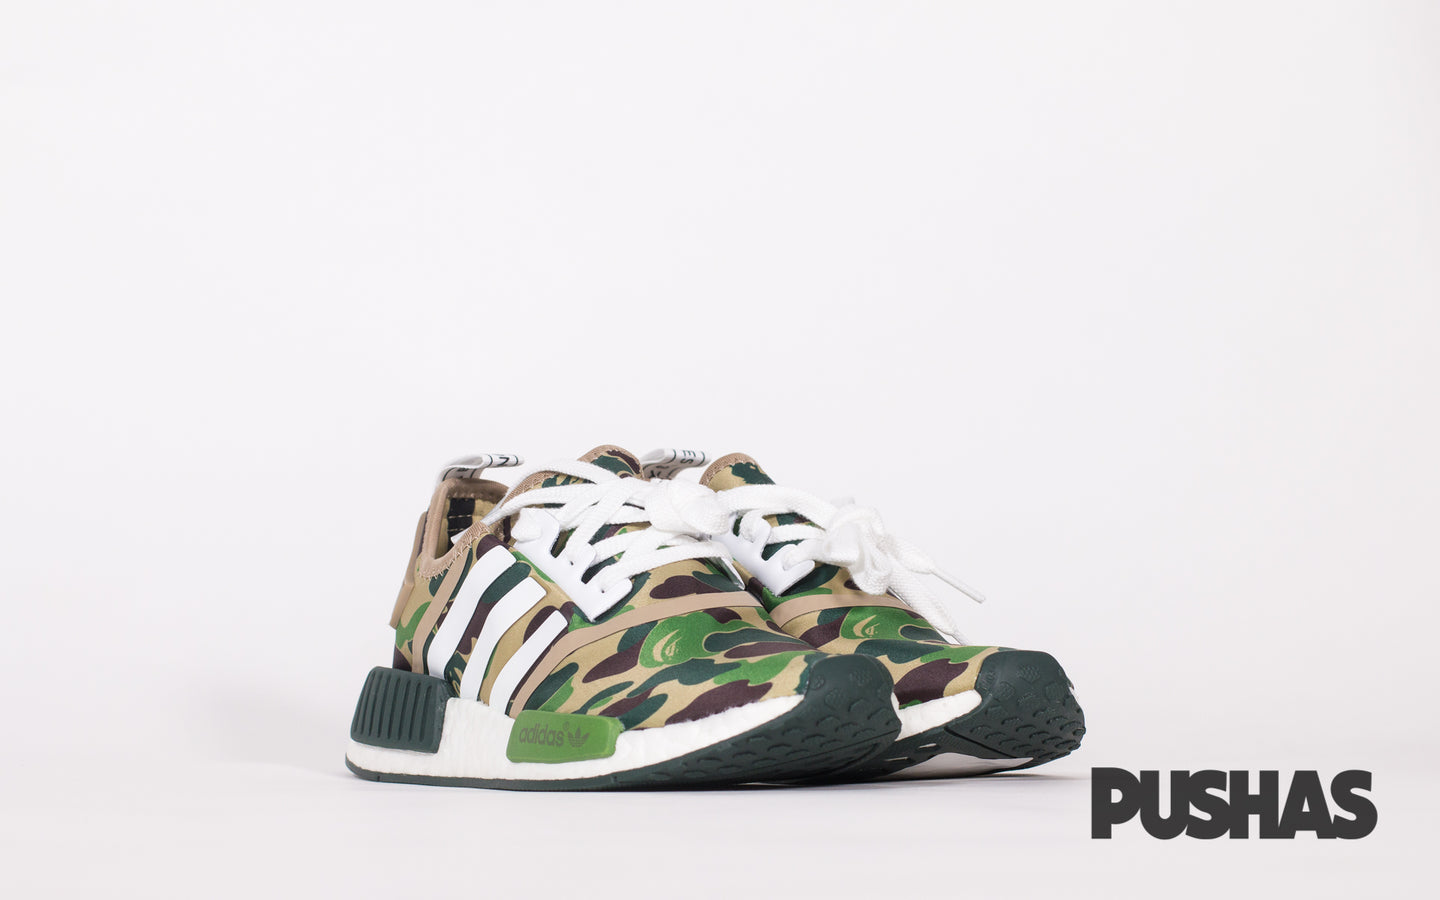 NMD_R1 x Bape 'Camo' (New) - PUSHAS